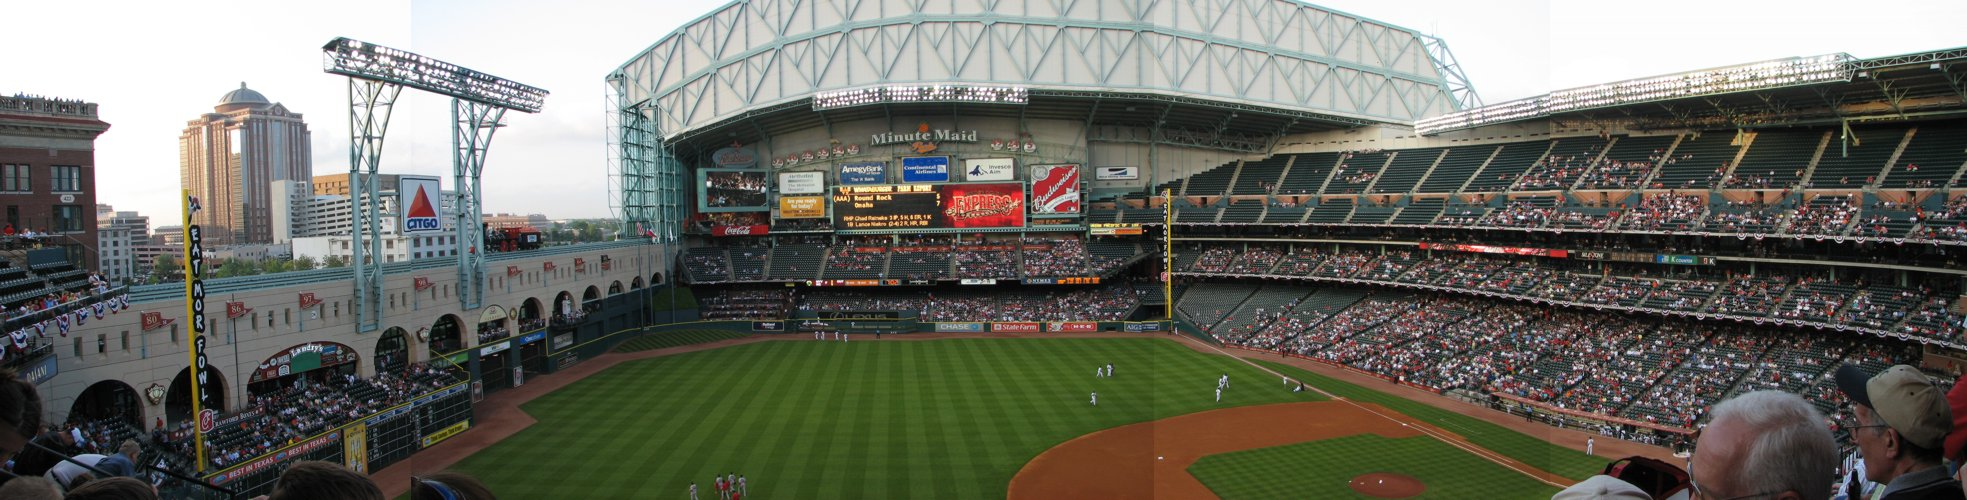 Panoramic View of Minute Maid Park